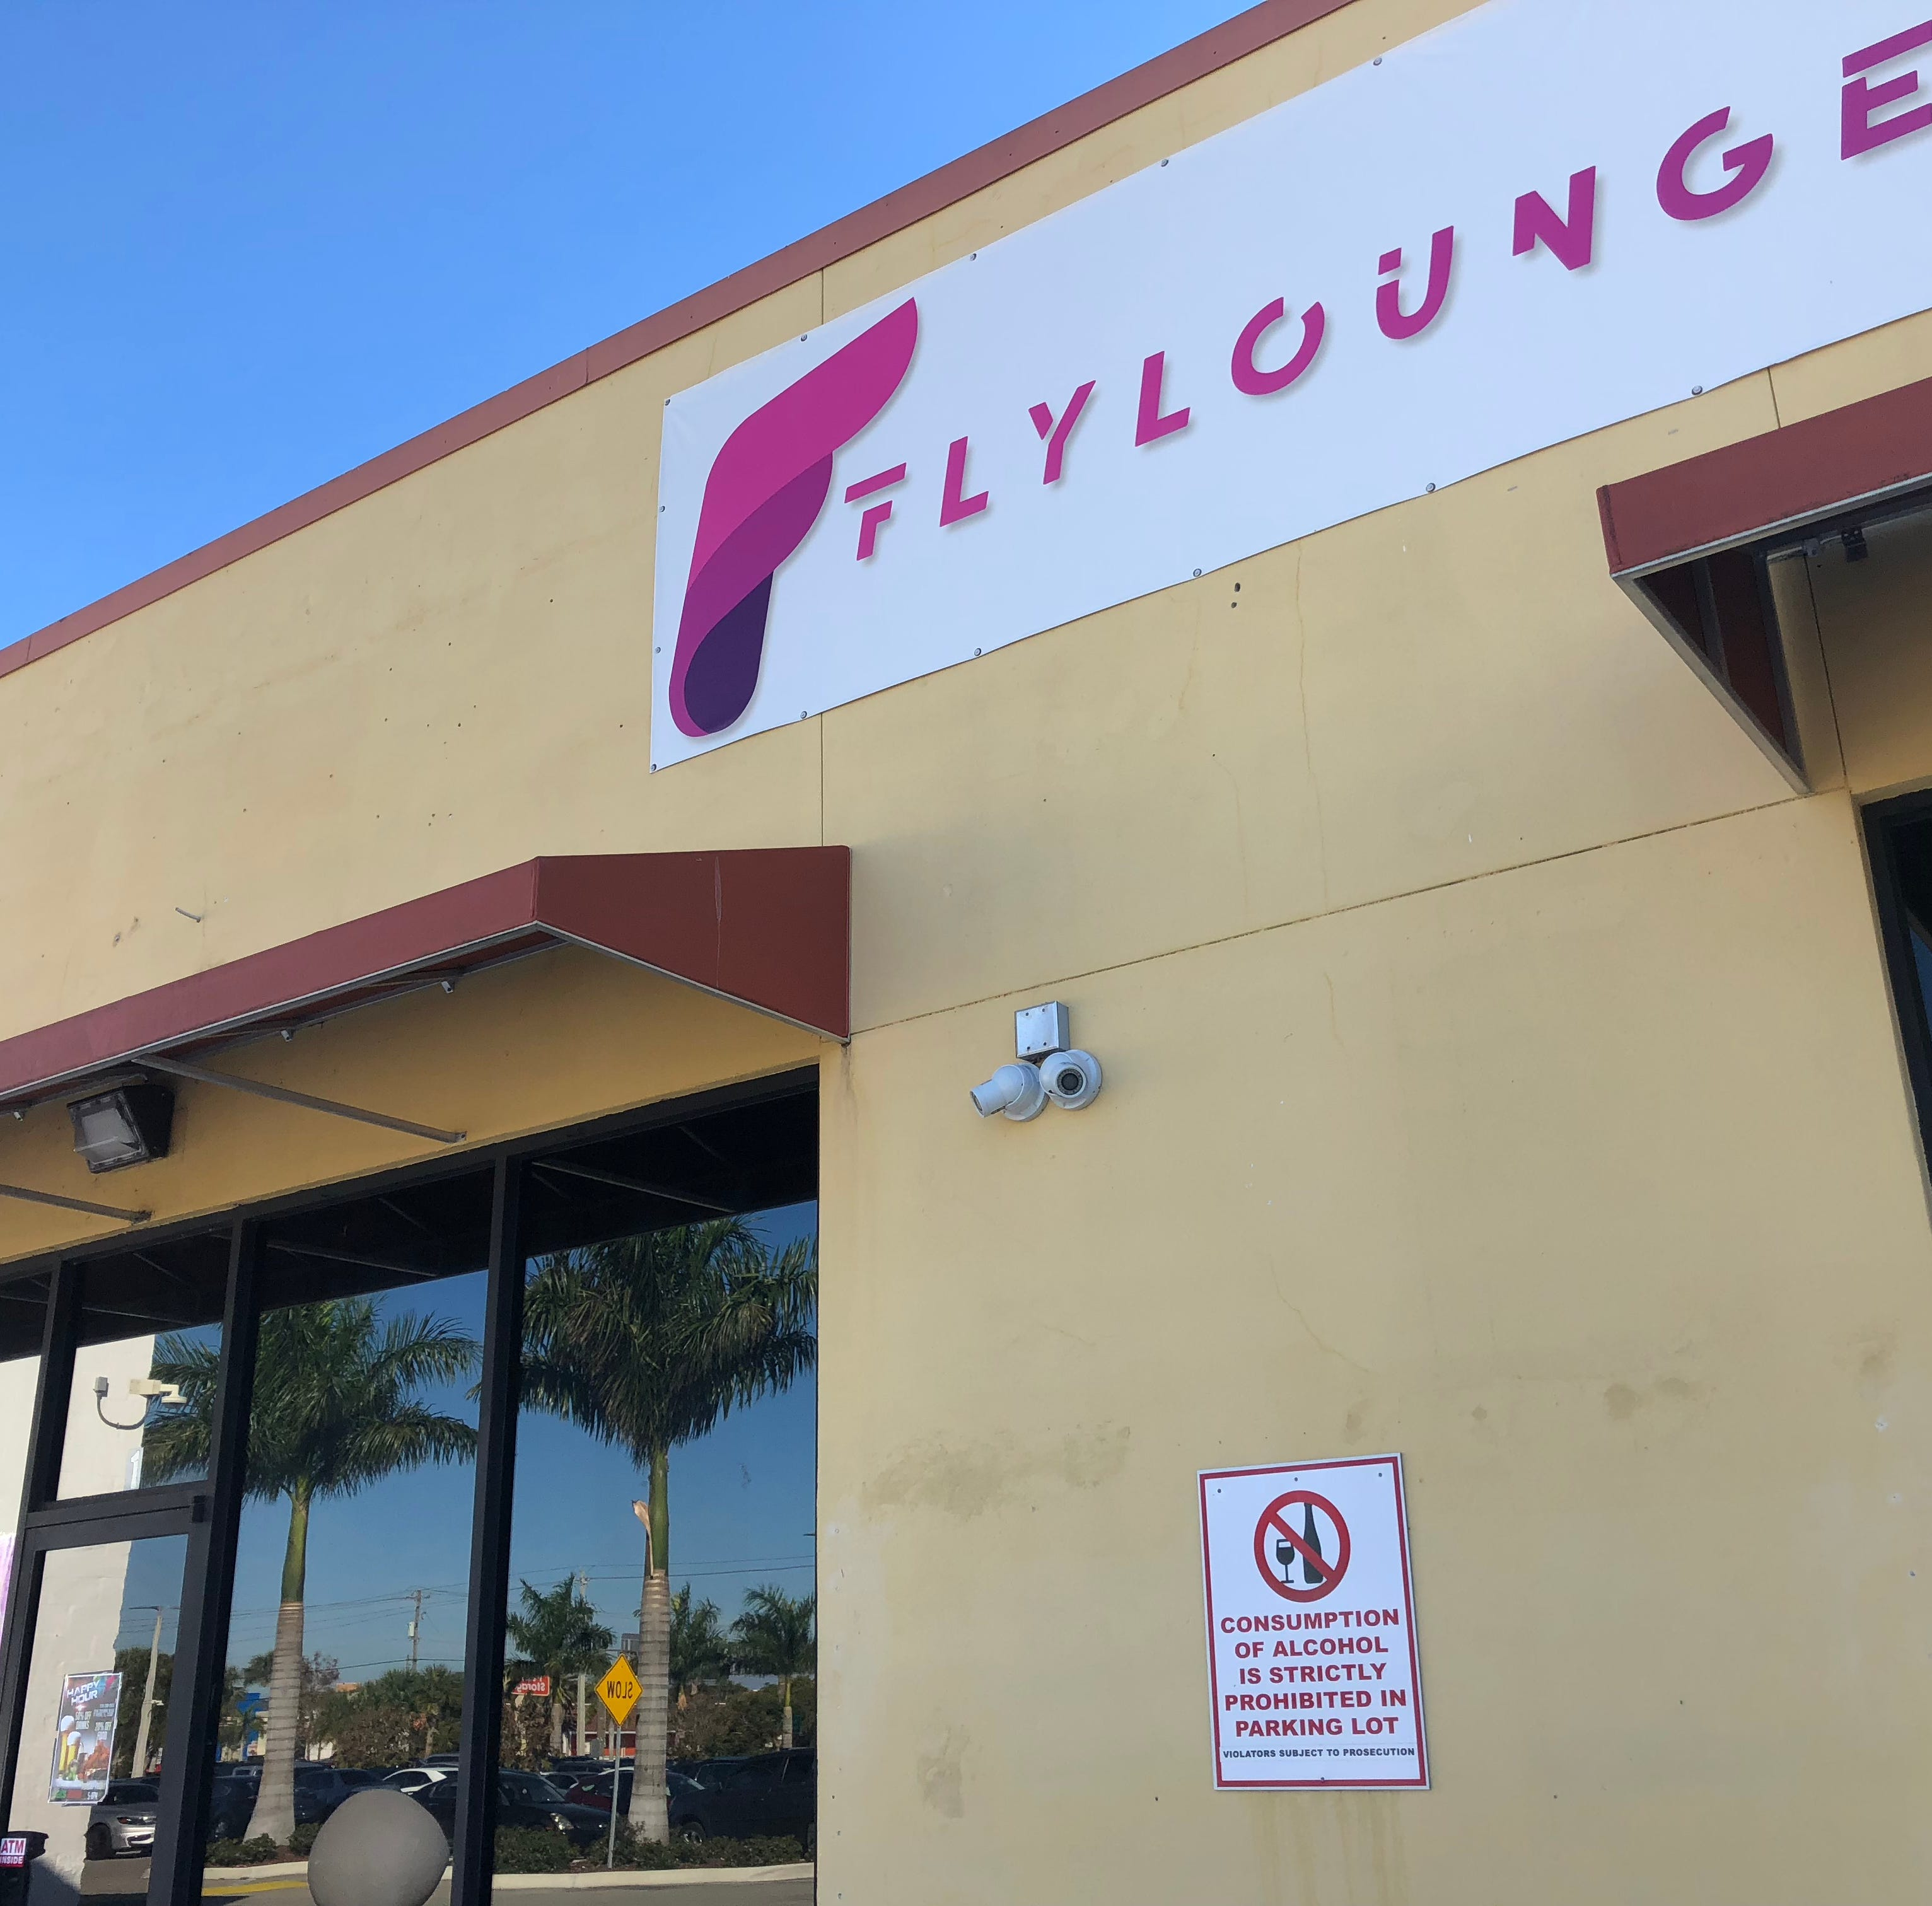 Fort Myers councilman asks for immediate closure of Fly Lounge after another shooting